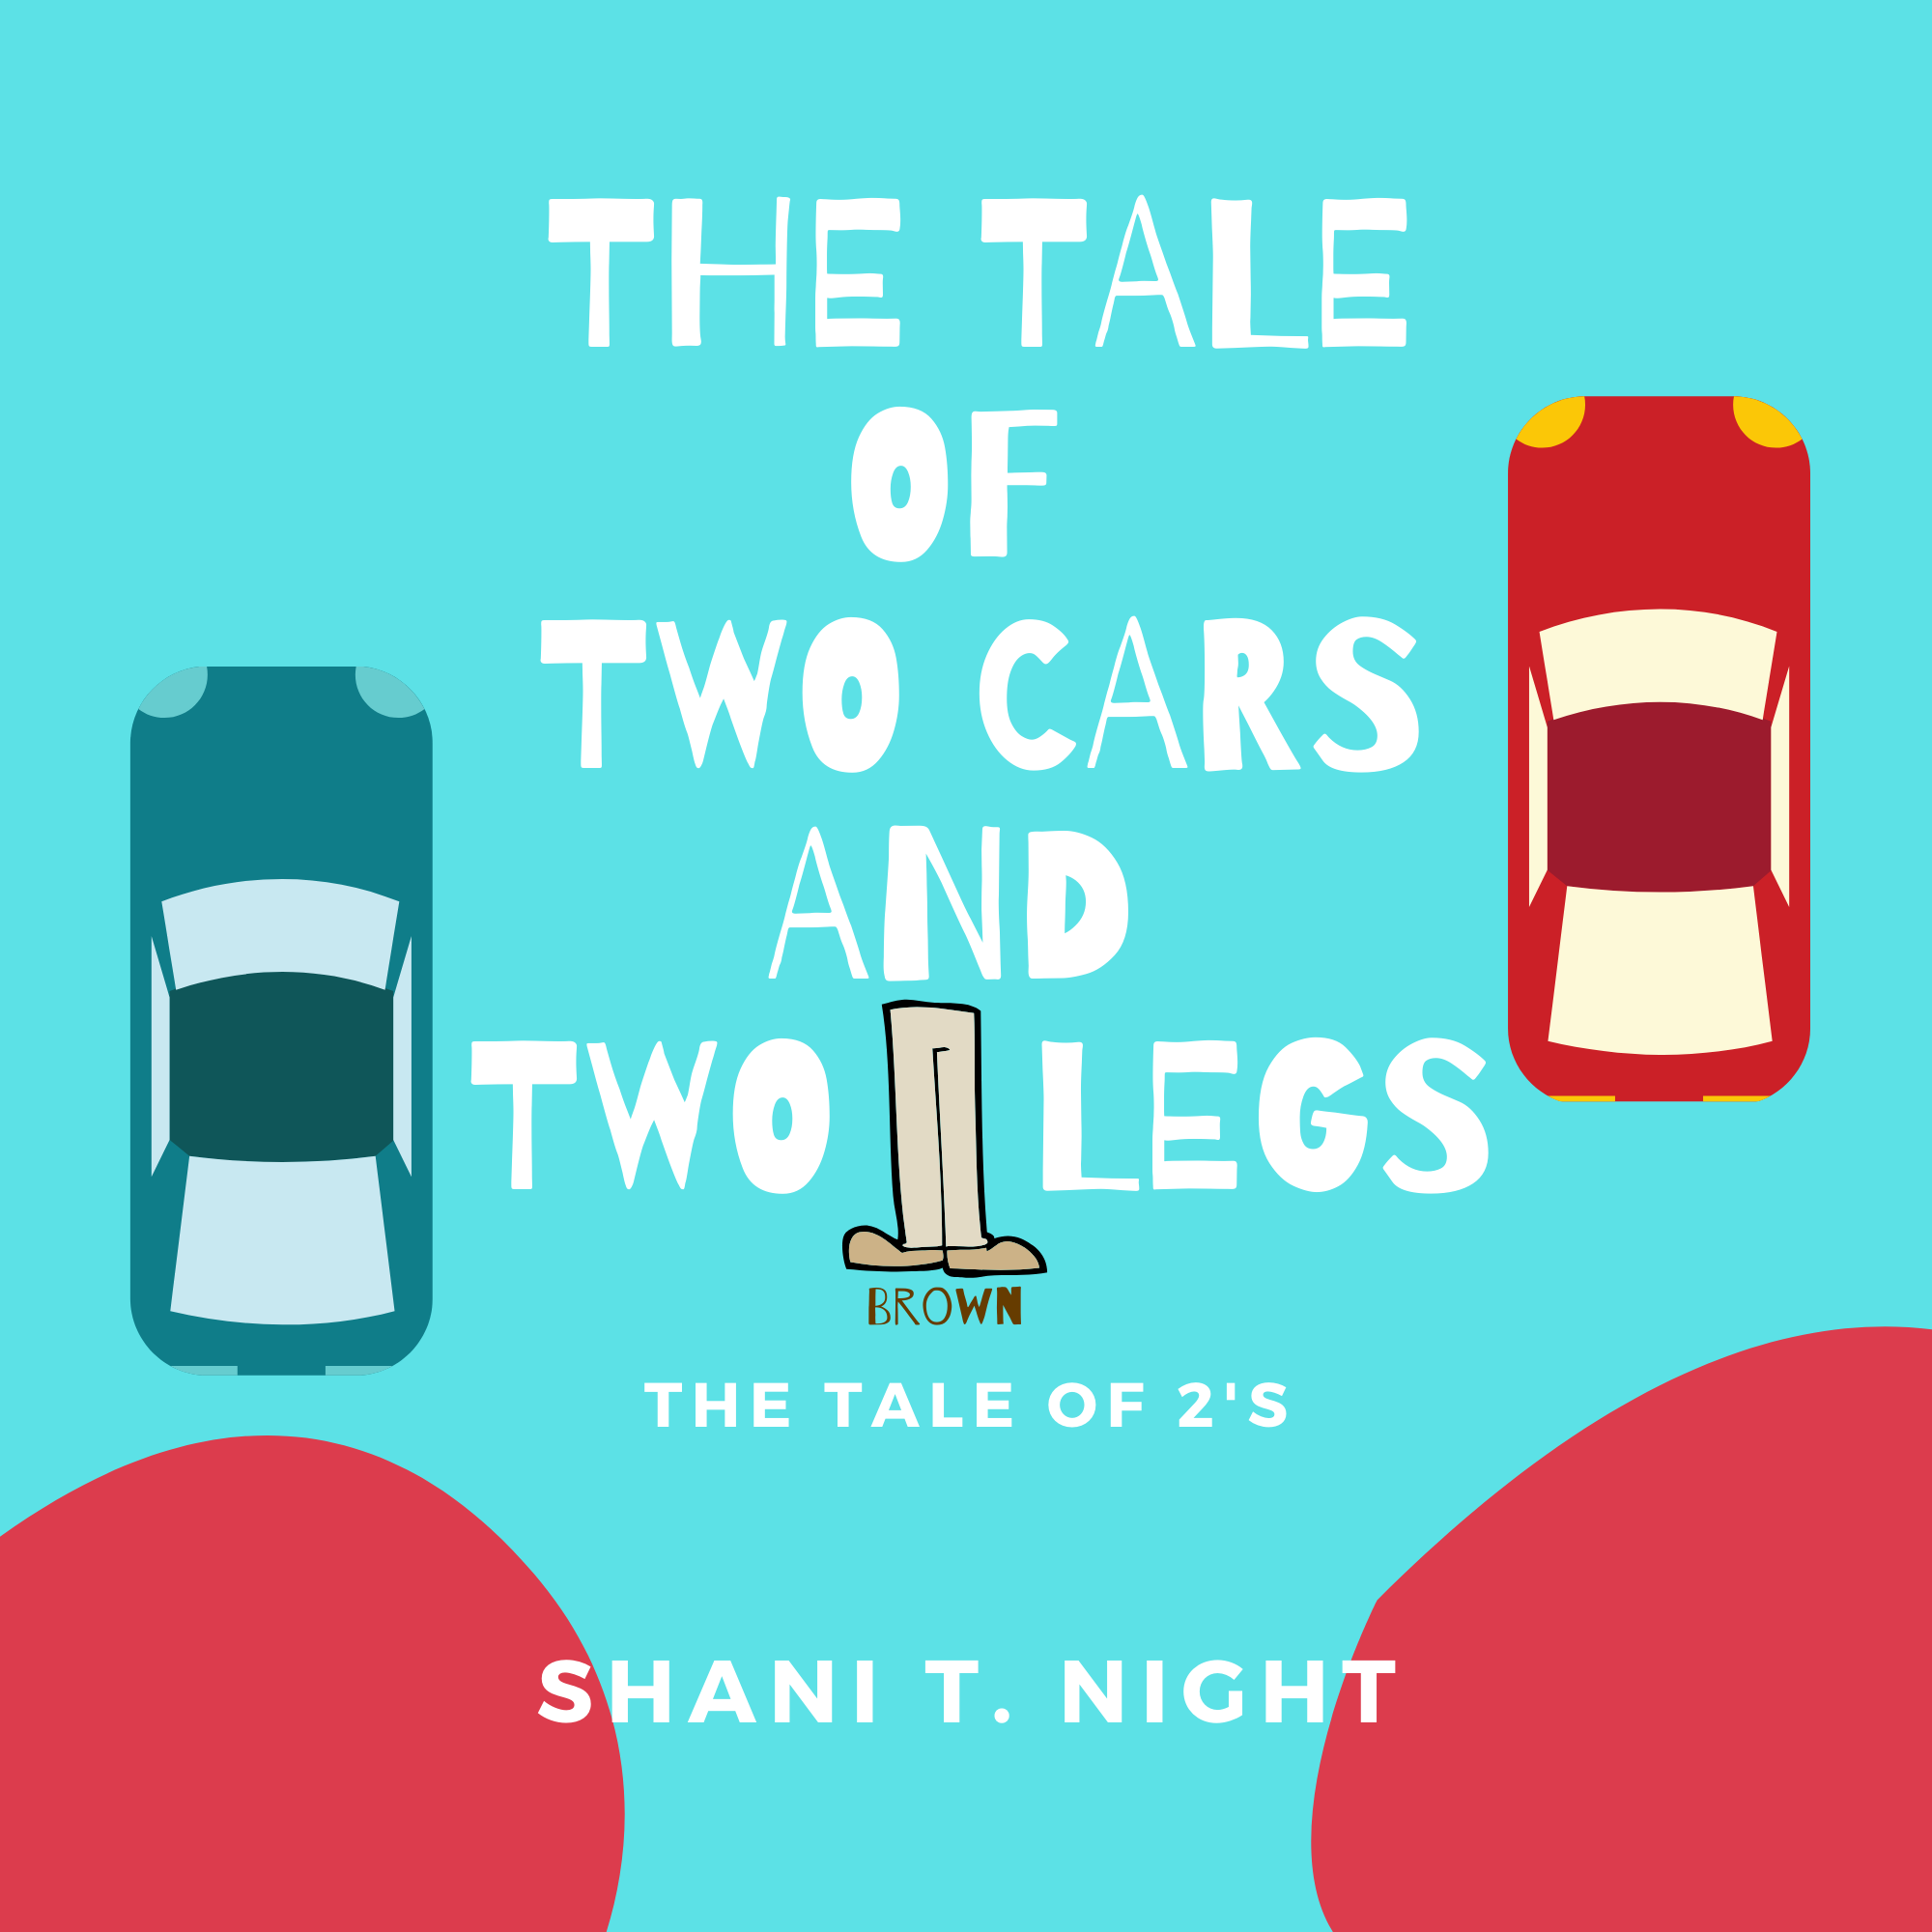 The Tale of Two Cars and Brown Legs's Ebook Image